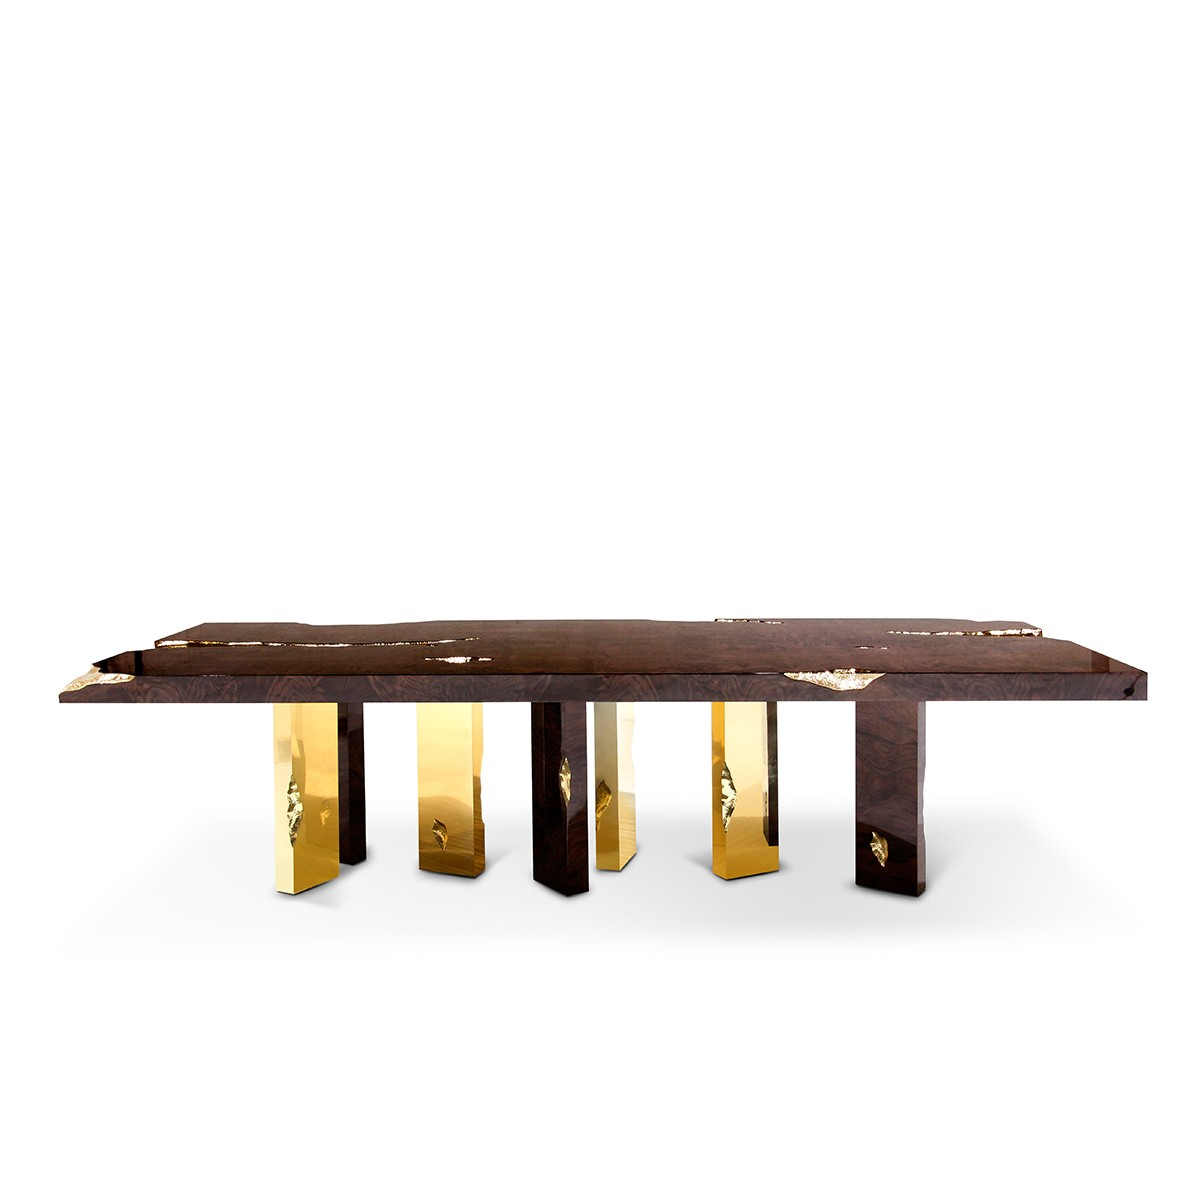 Top Bespoke Dining Tables (Part II) bespoke dining tables Top Bespoke Dining Tables (Part II) empire2